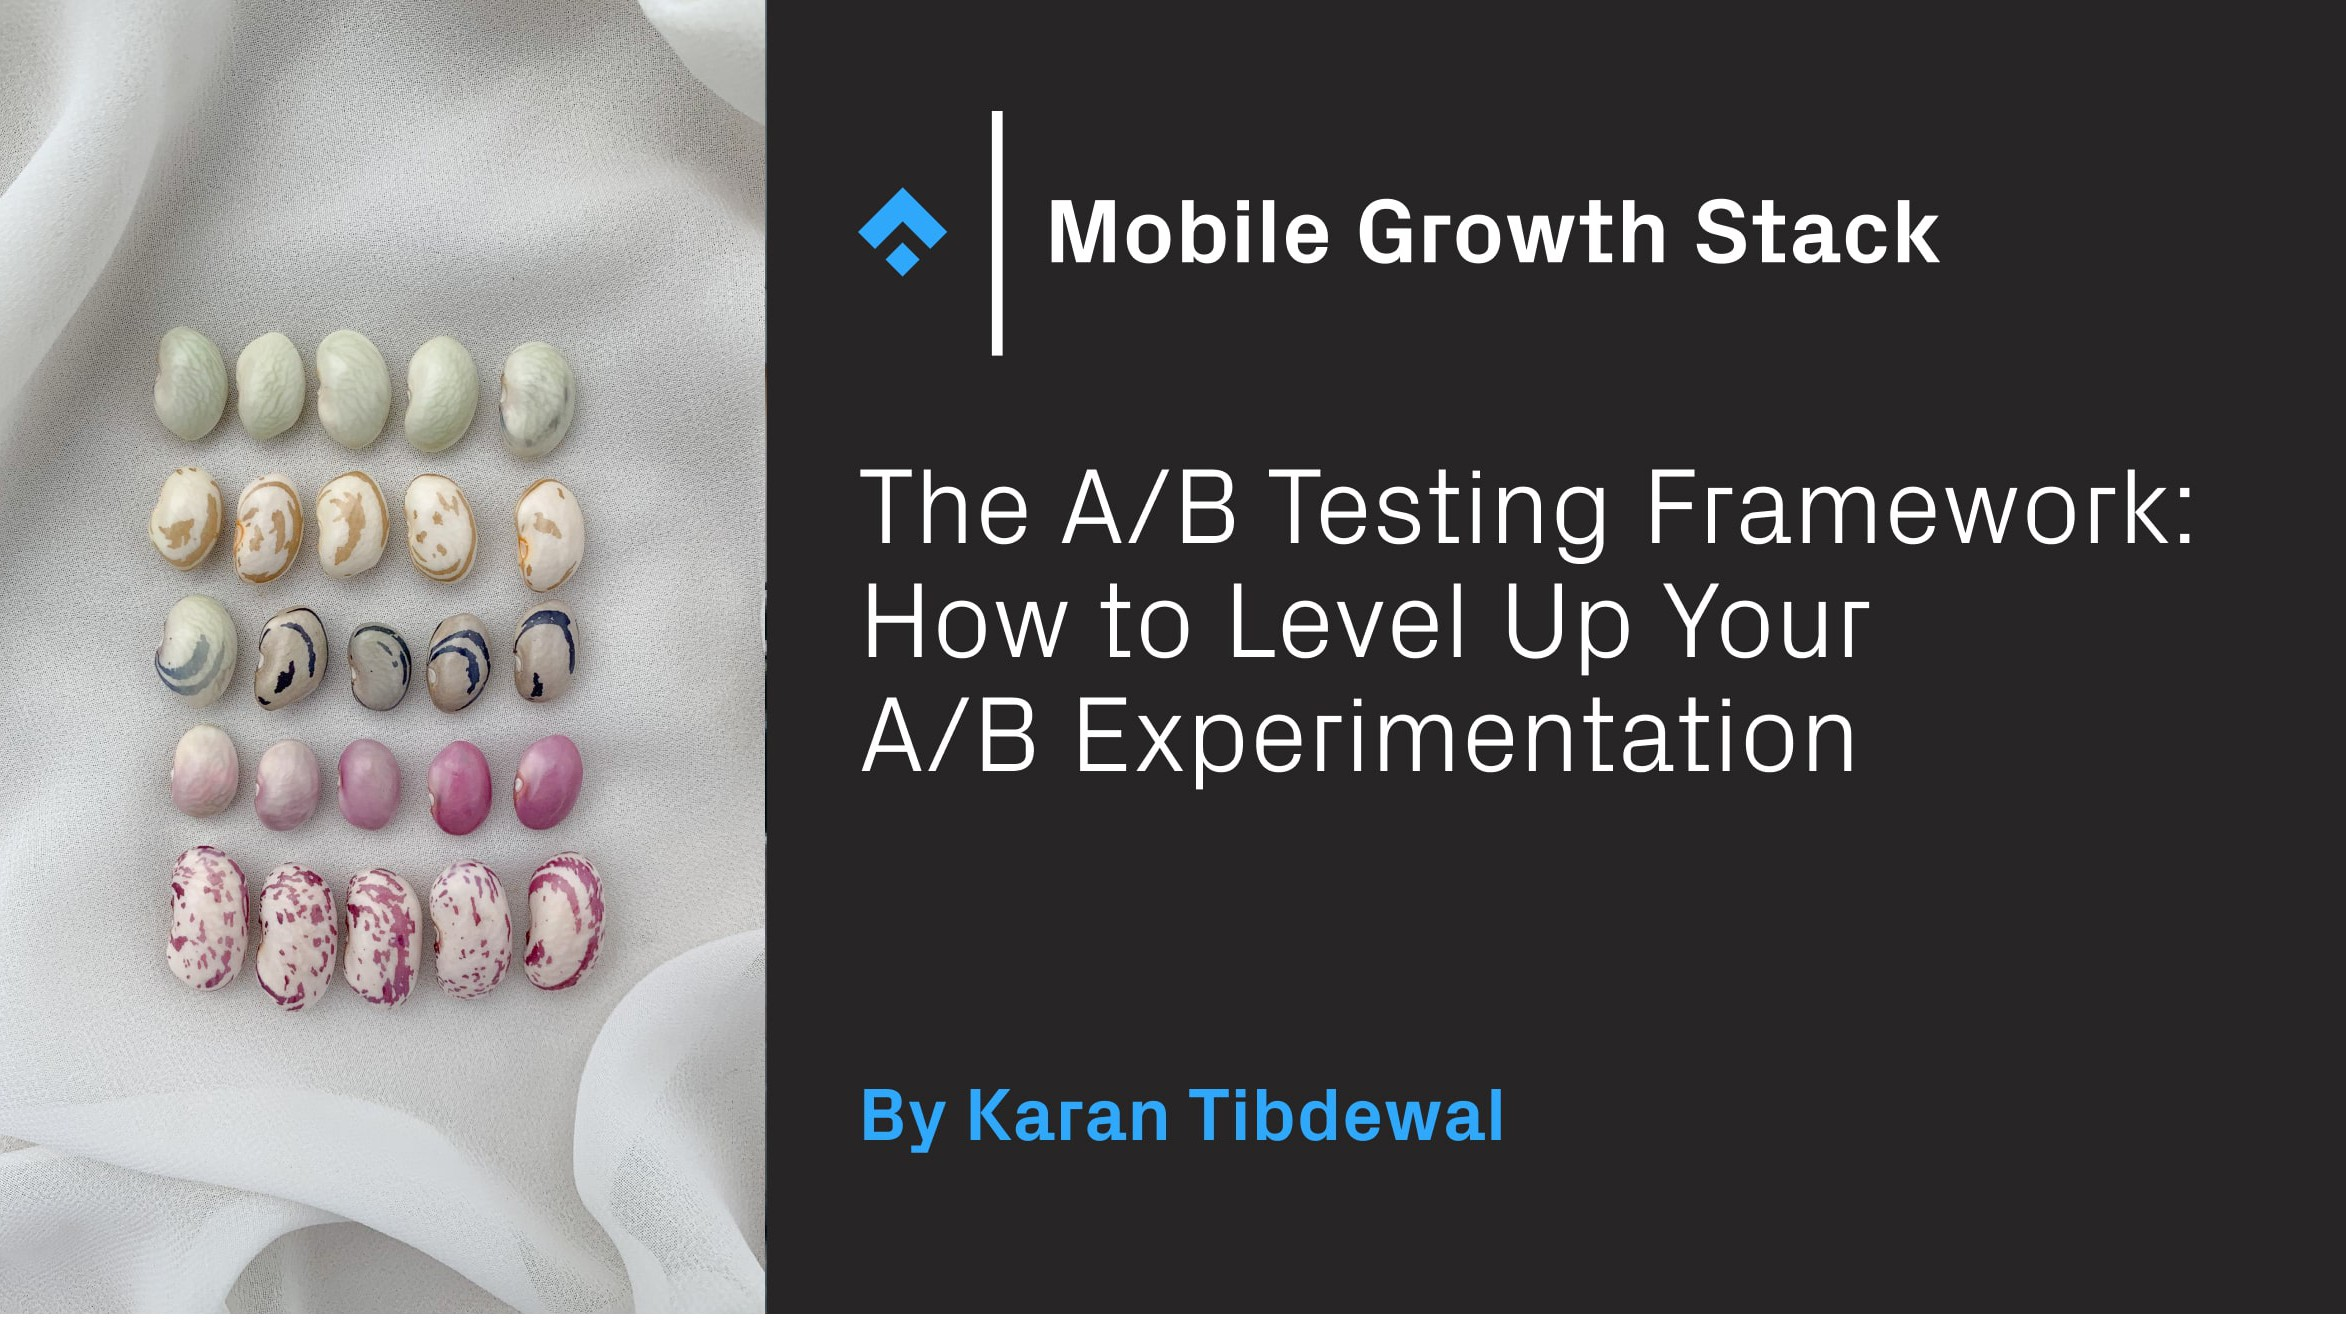 The A/B Testing Framework: How to Level Up Your A/B Experimentation